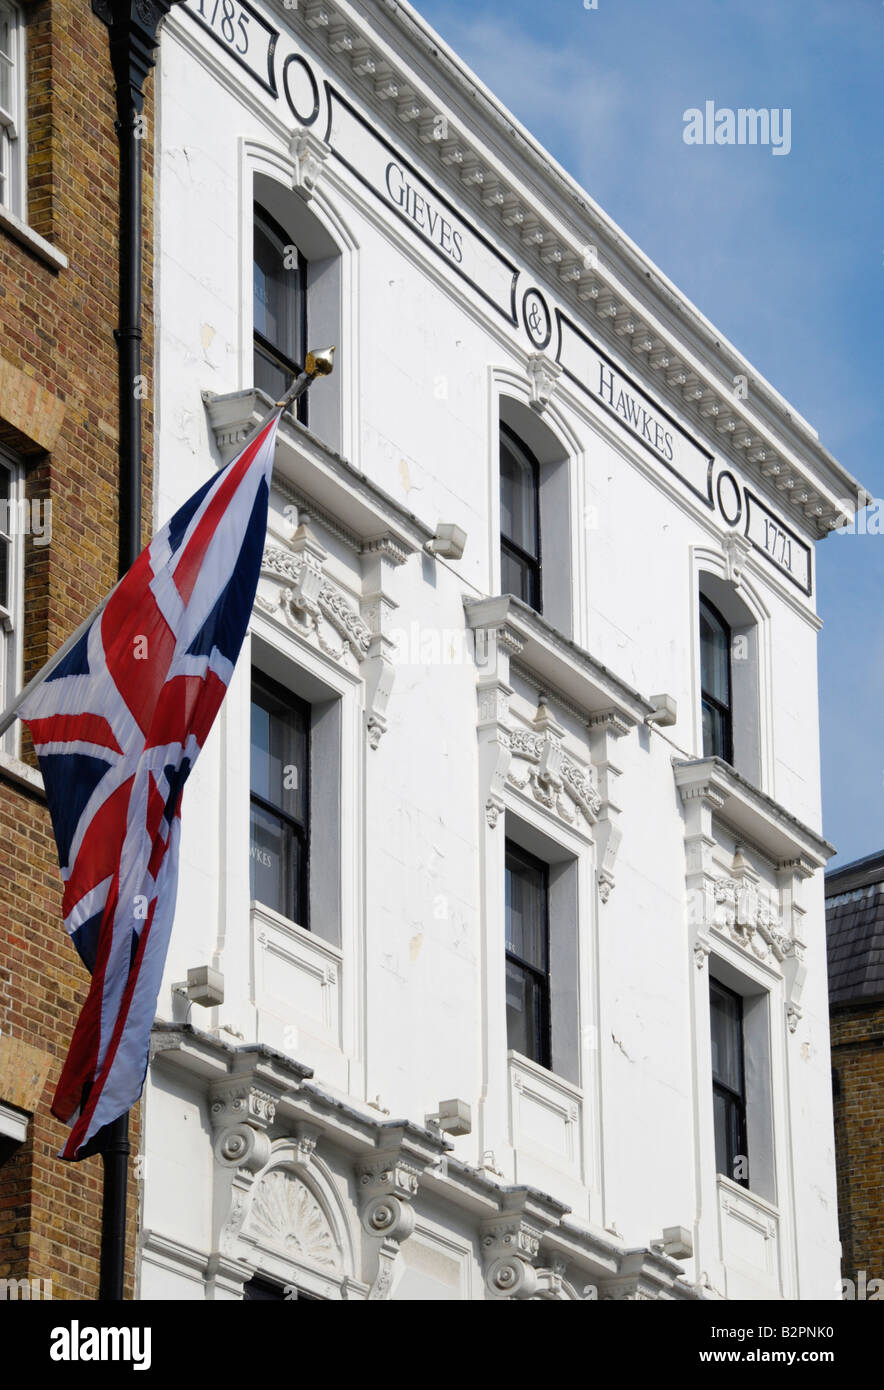 Gieves and Hawkes tailors exterior at No 1 Saville Row Mayfair London England - Stock Image